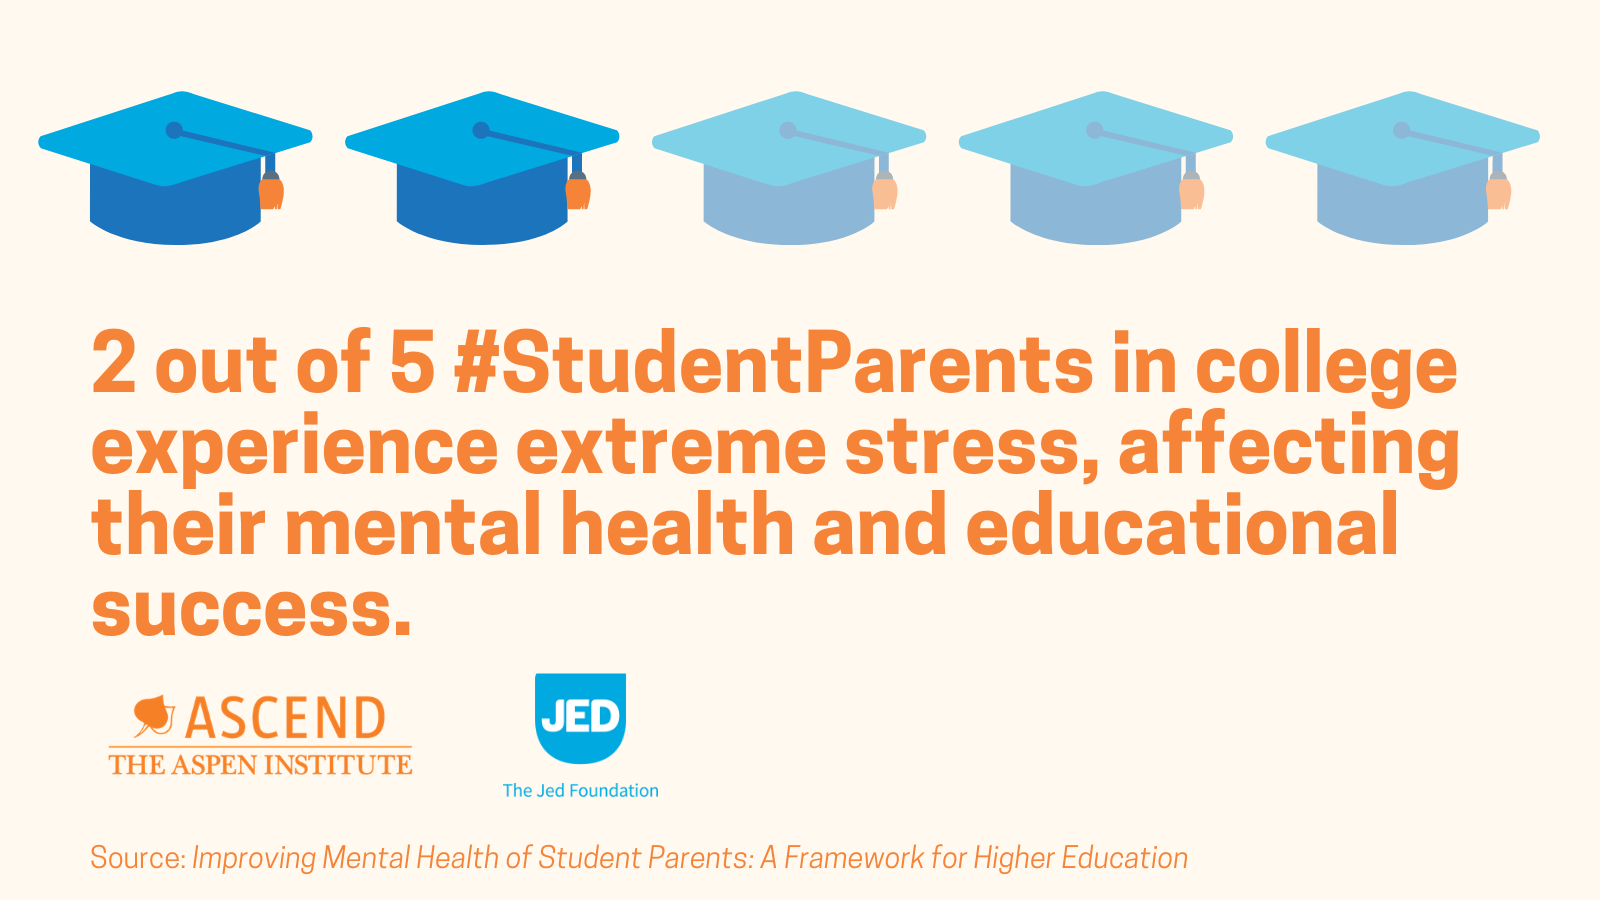 New Study: Student Parents in College Experience Unique Mental Health Challenges but Lack Access to Support on Campus